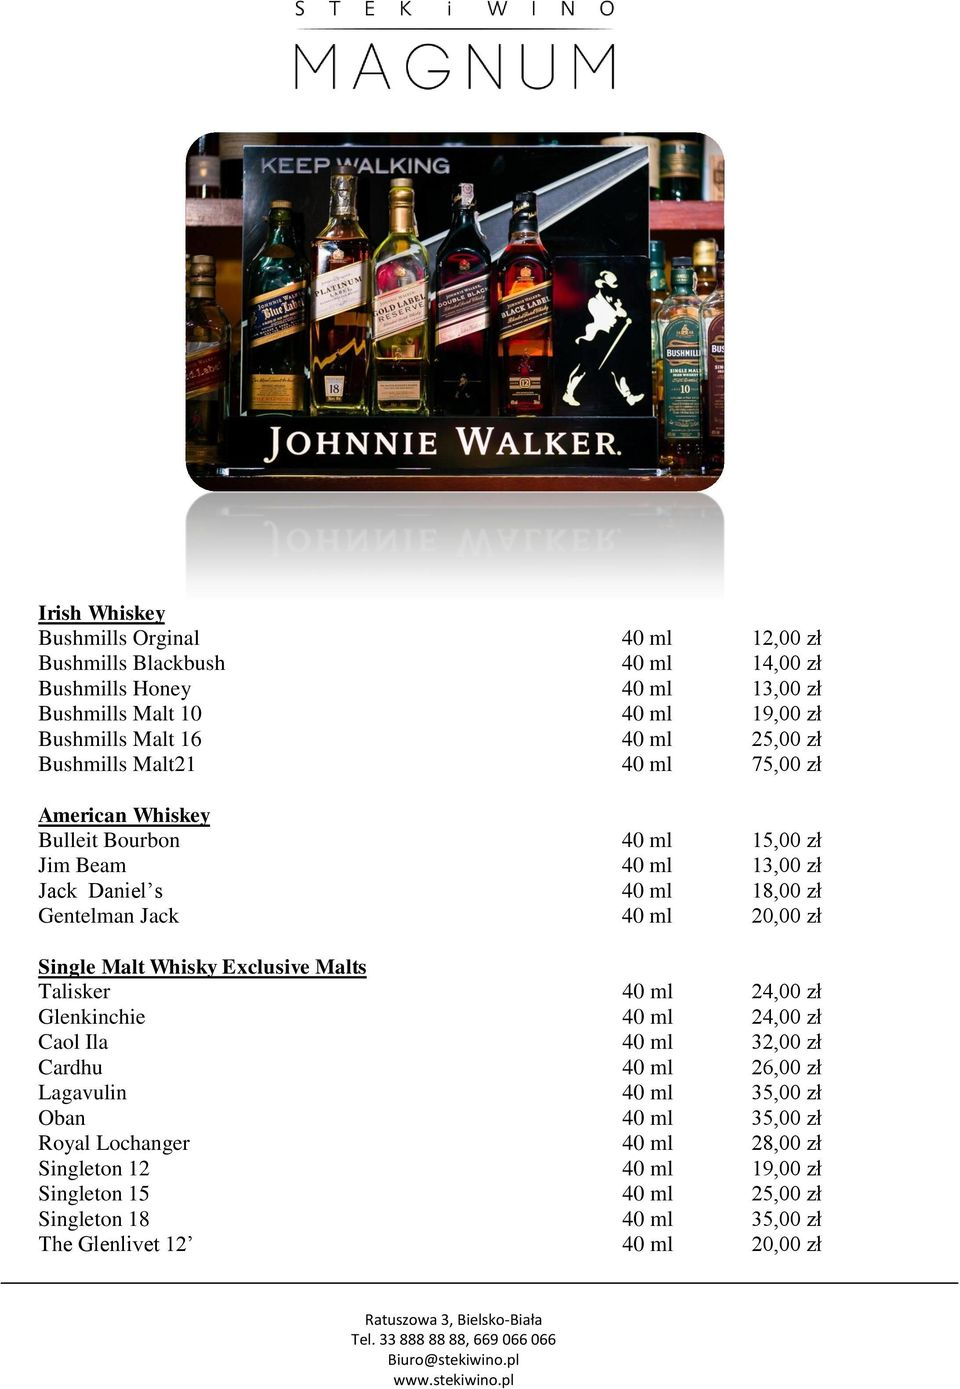 20,00 zł Single Malt Whisky Exclusive Malts Talisker 40 ml 24,00 zł Glenkinchie 40 ml 24,00 zł Caol Ila 40 ml 32,00 zł Cardhu 40 ml 26,00 zł Lagavulin 40 ml 35,00 zł